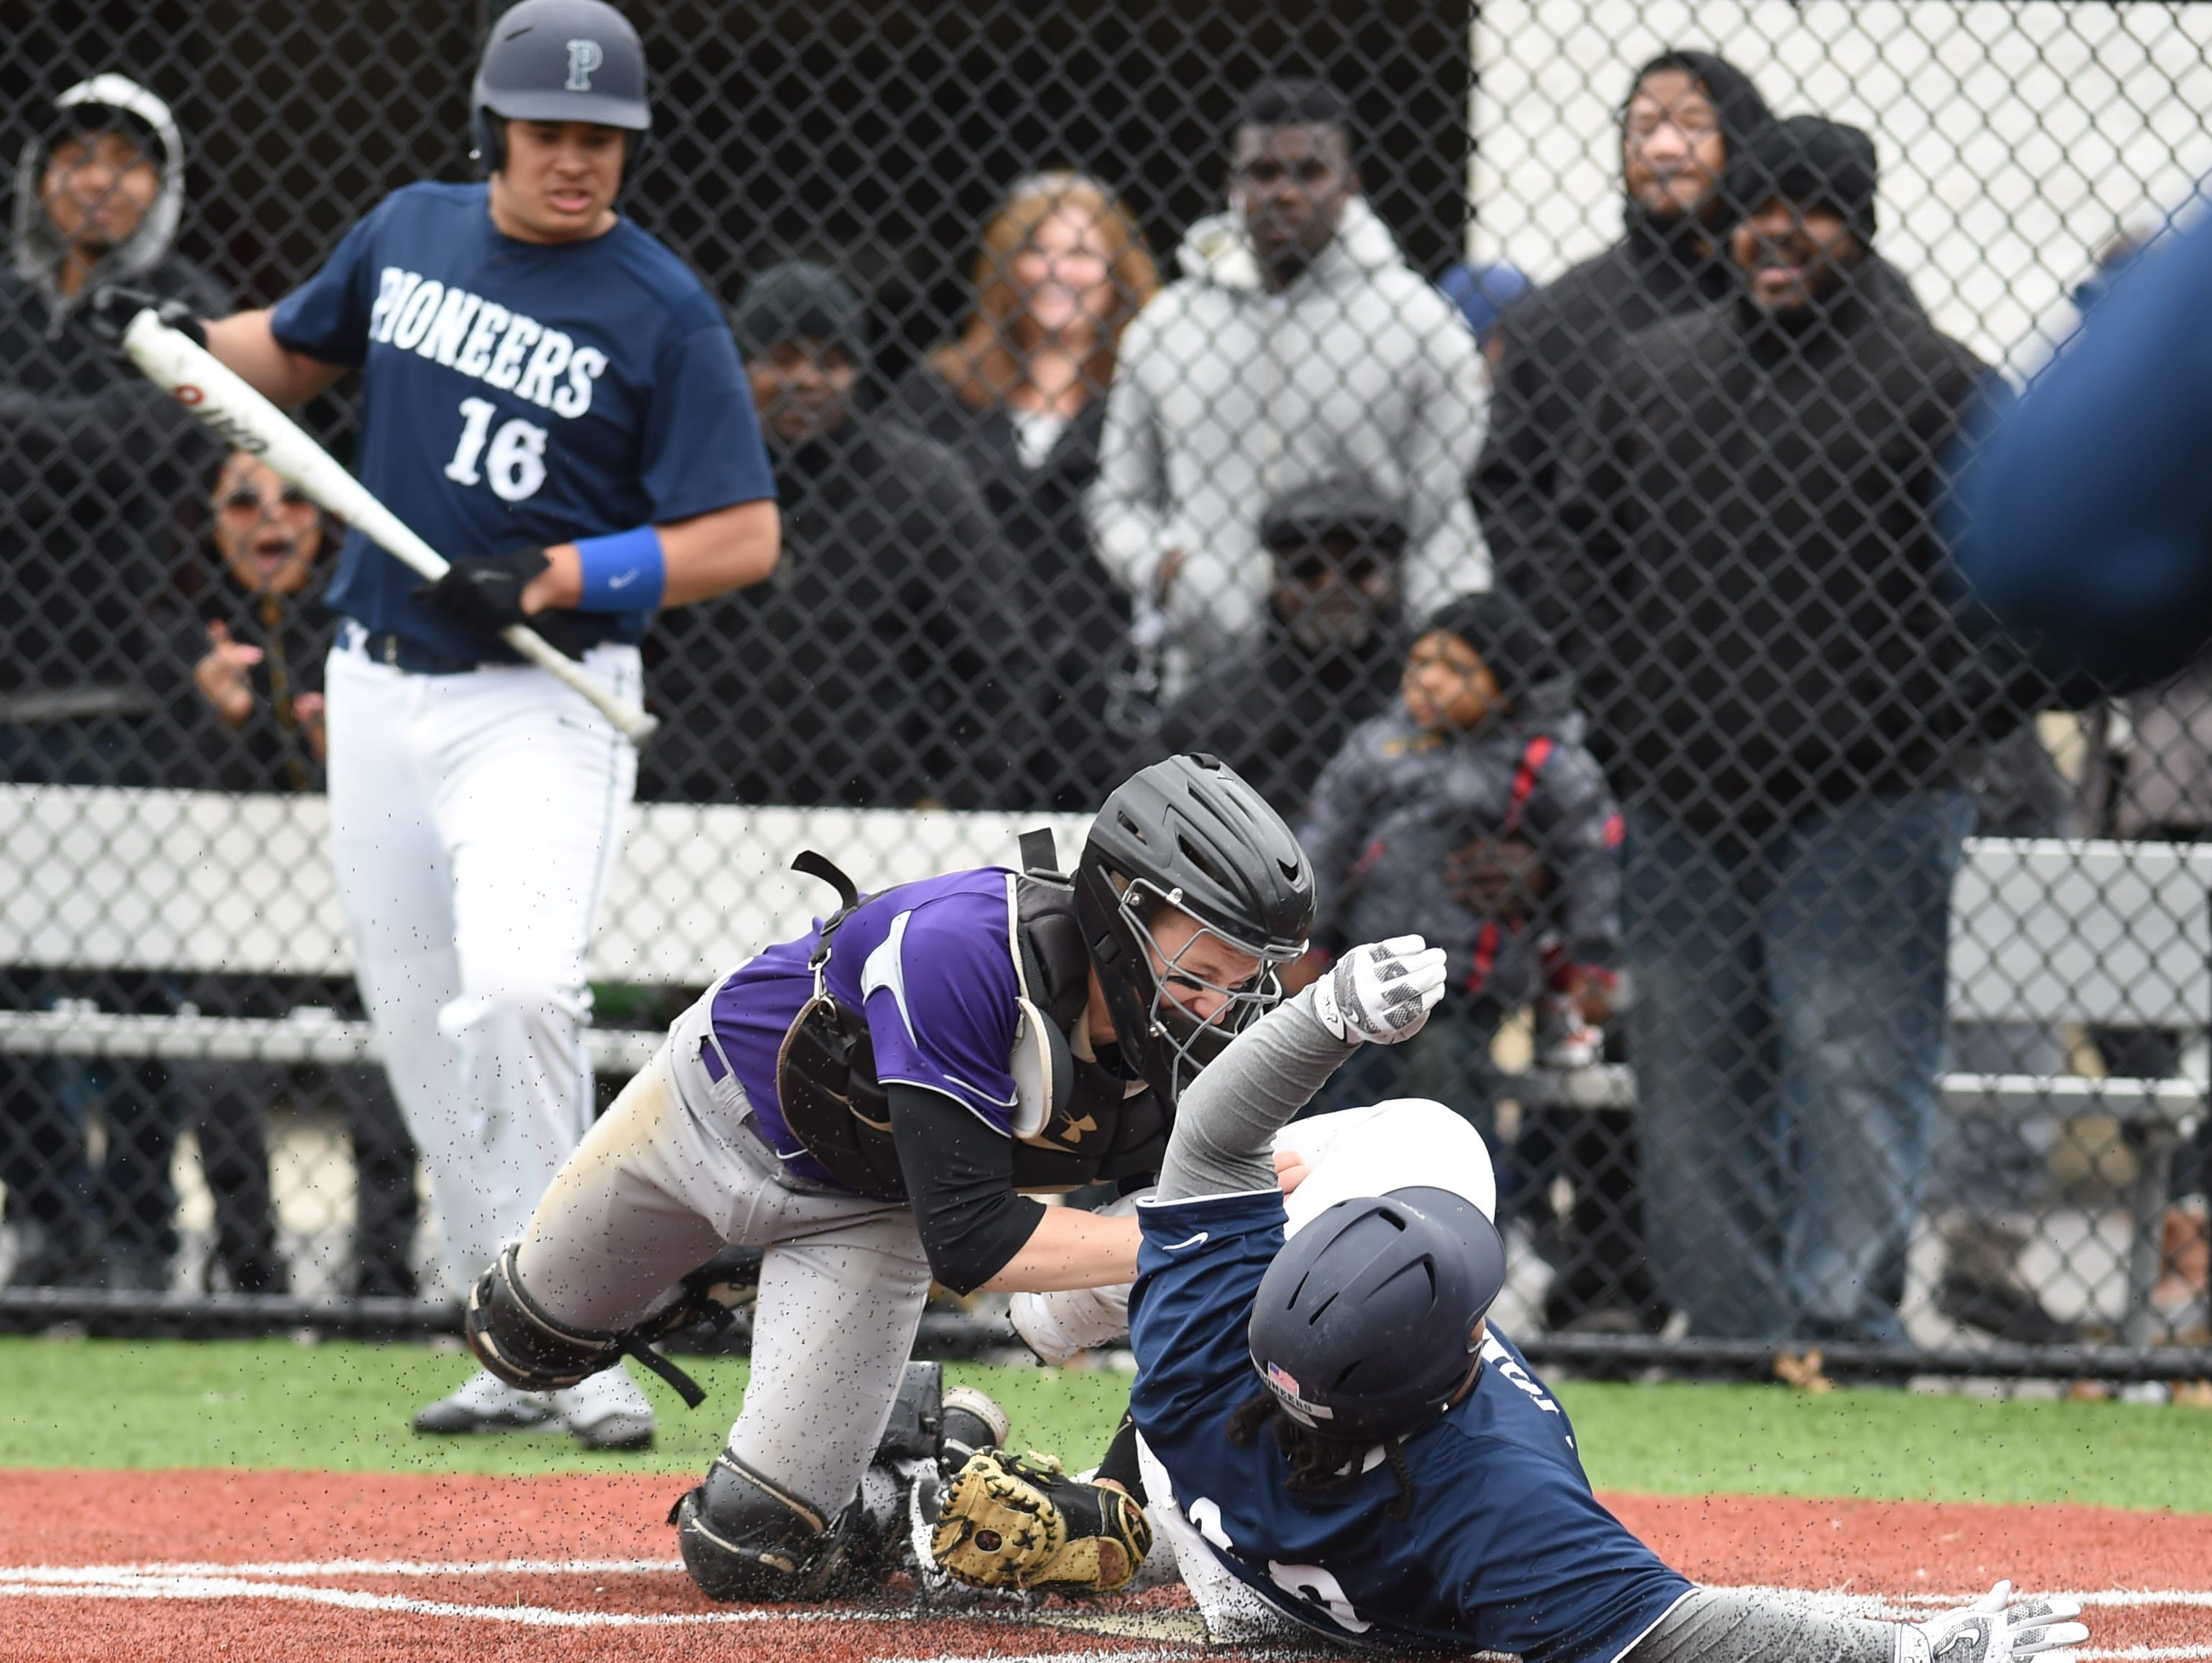 Poughkeepsie's Marcus Blocker slides into home under Rhinebeck's Spencer Hutchins during Saturday's game at Poughkeepsie High School.